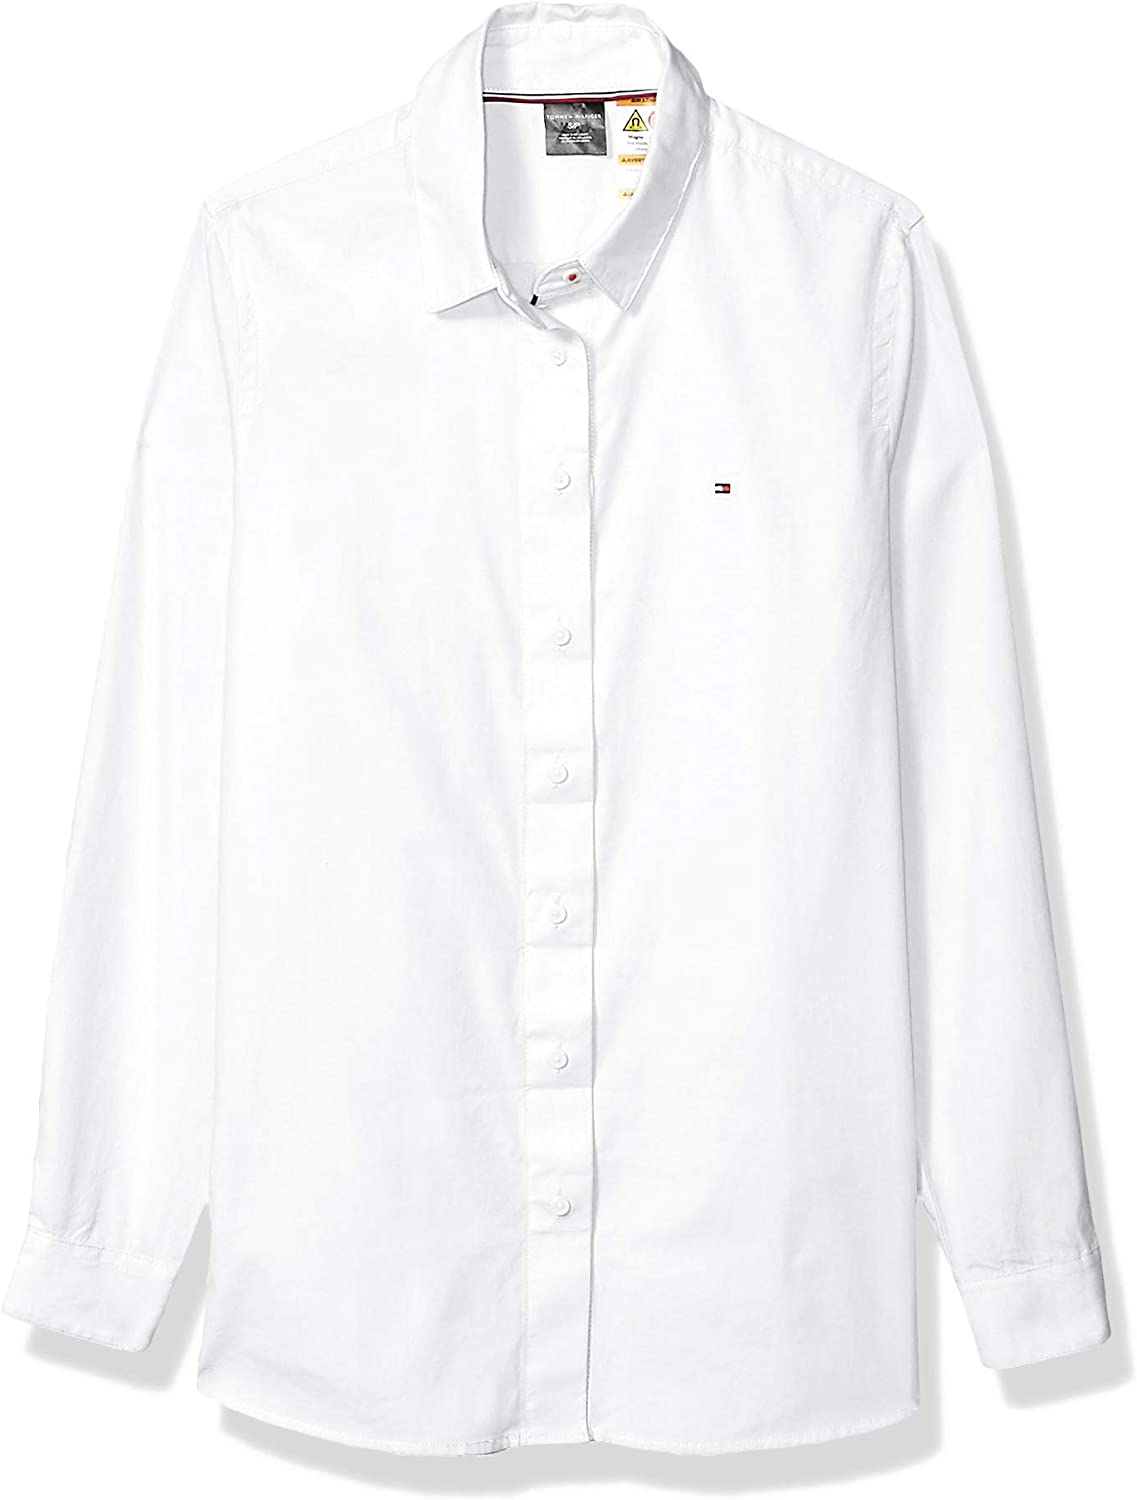 Tommy Hilfiger Women's Adaptive Shirt with Magnetic Buttons